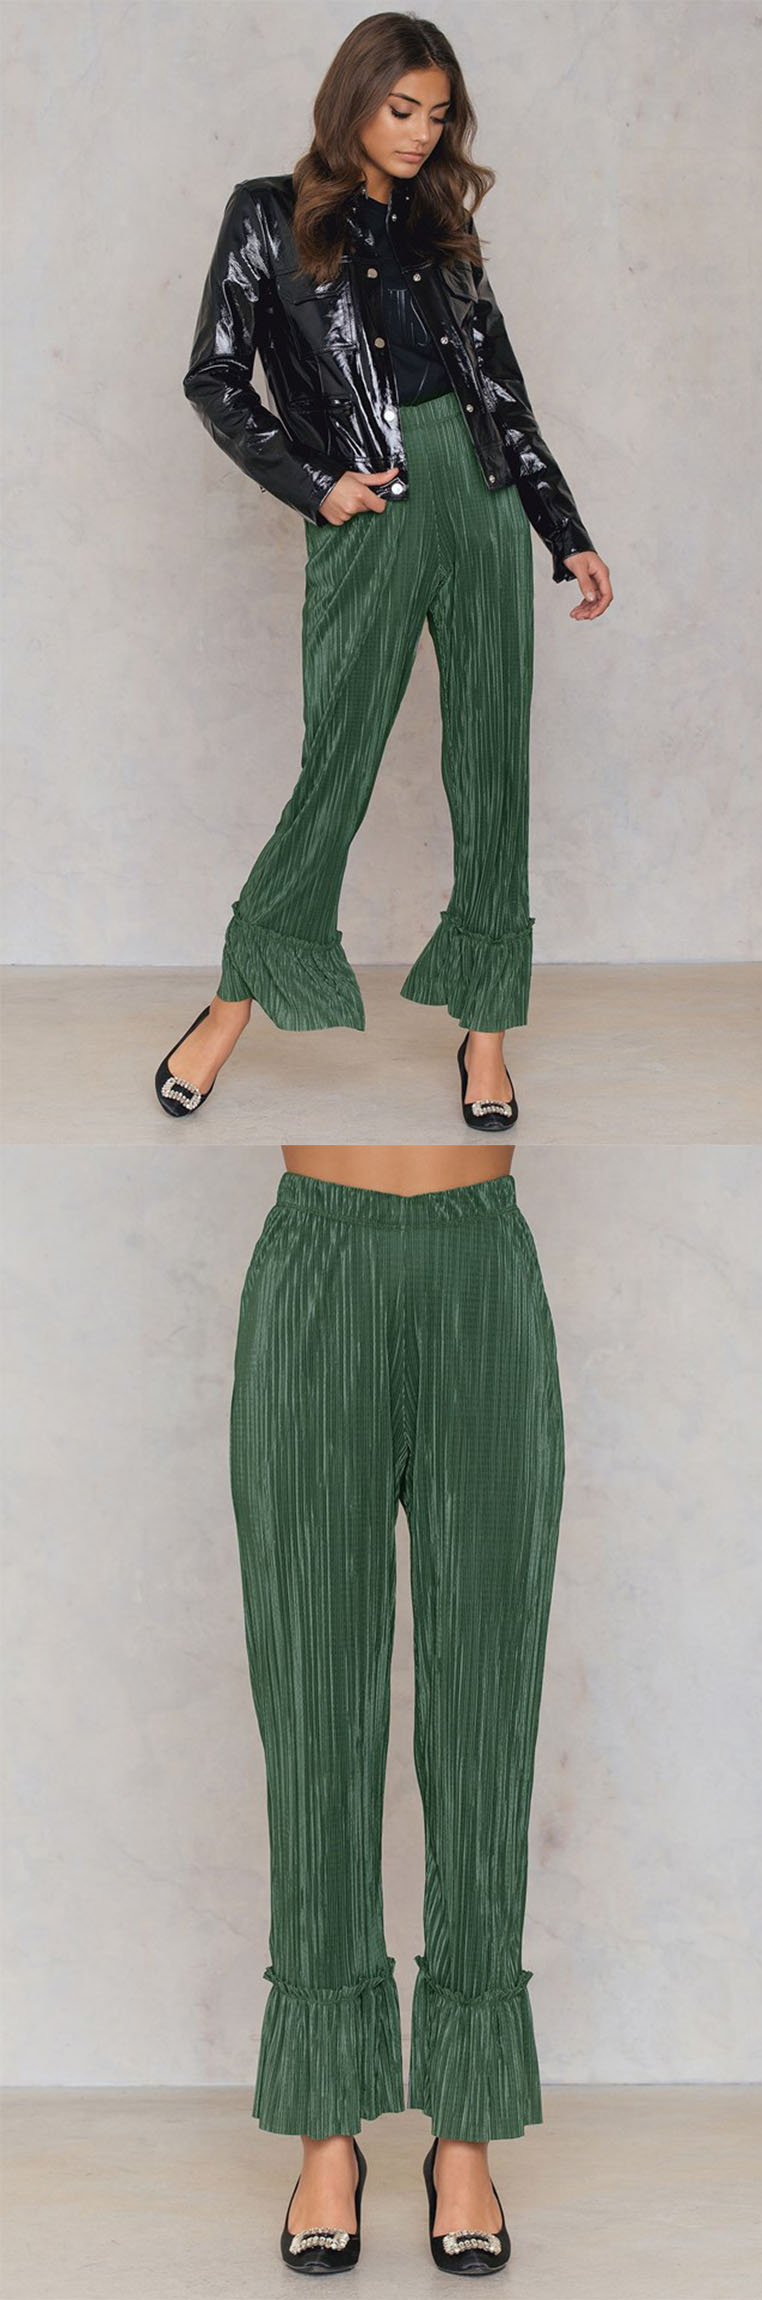 Fashion 2018 Women Clothing Summer Pleated Frill Pants